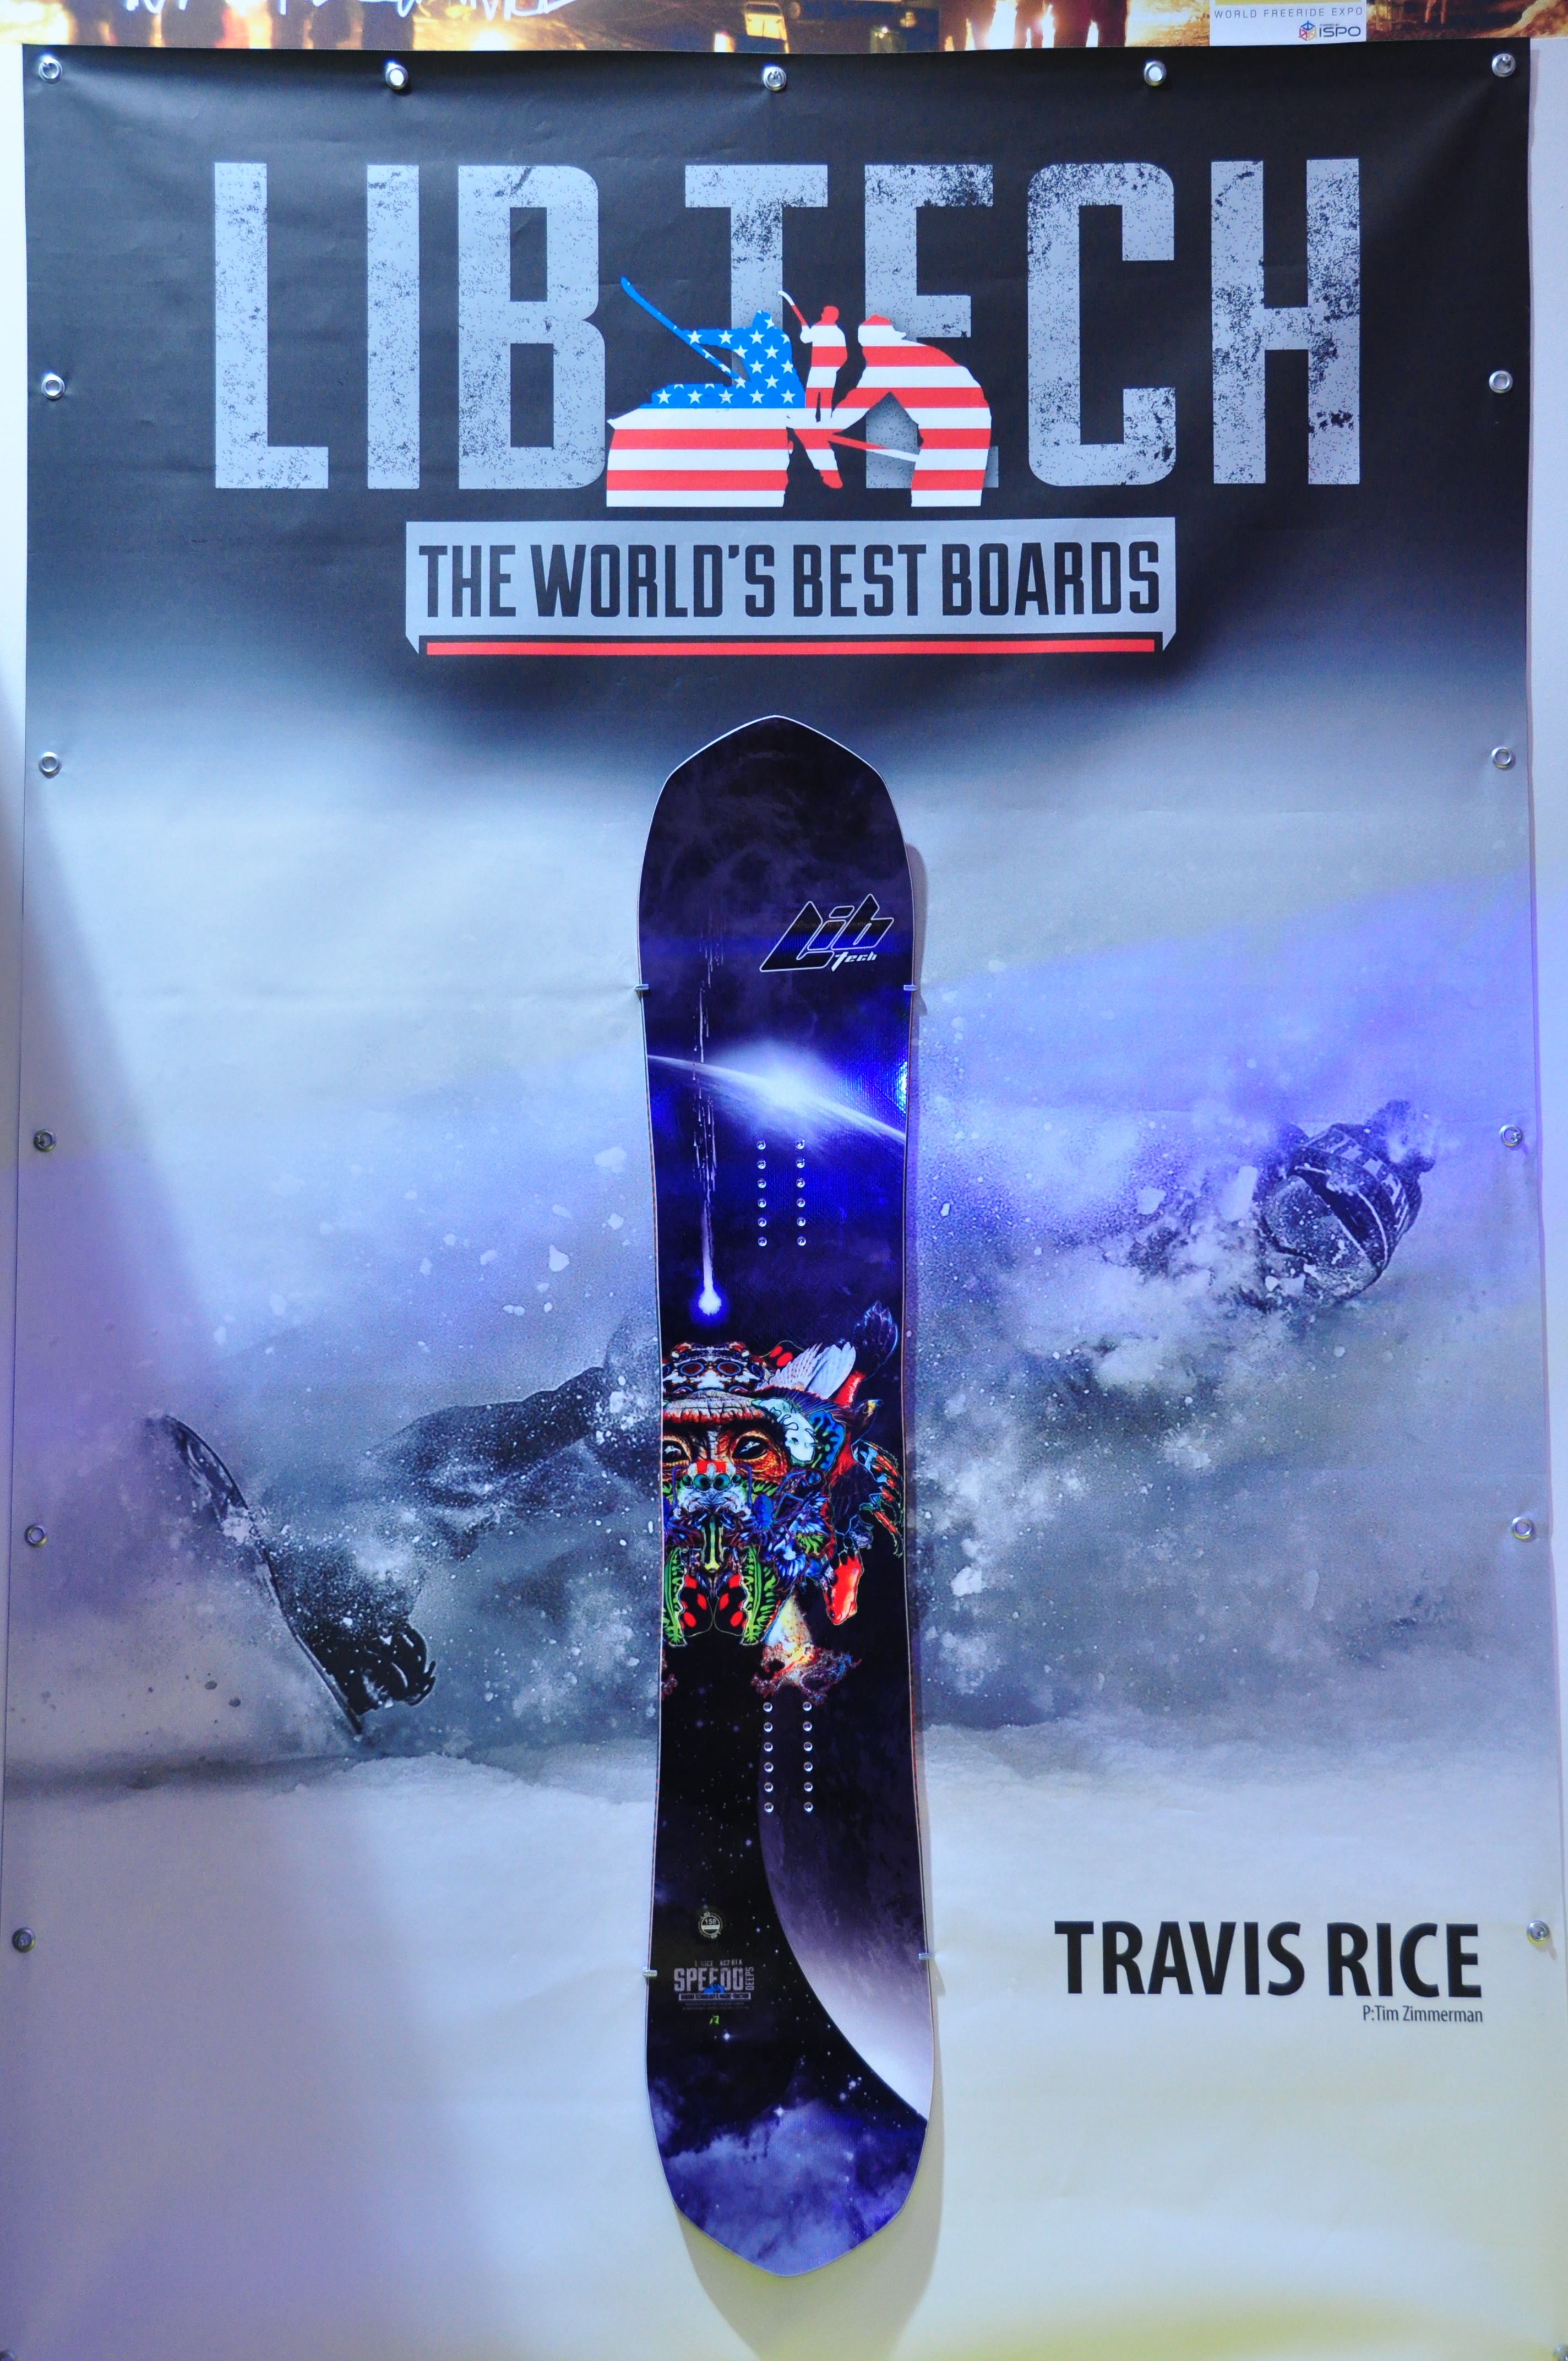 Best Men's All-Mountain Snowboards 2015- 2016 Lib Tech Travis Rice Gold Member